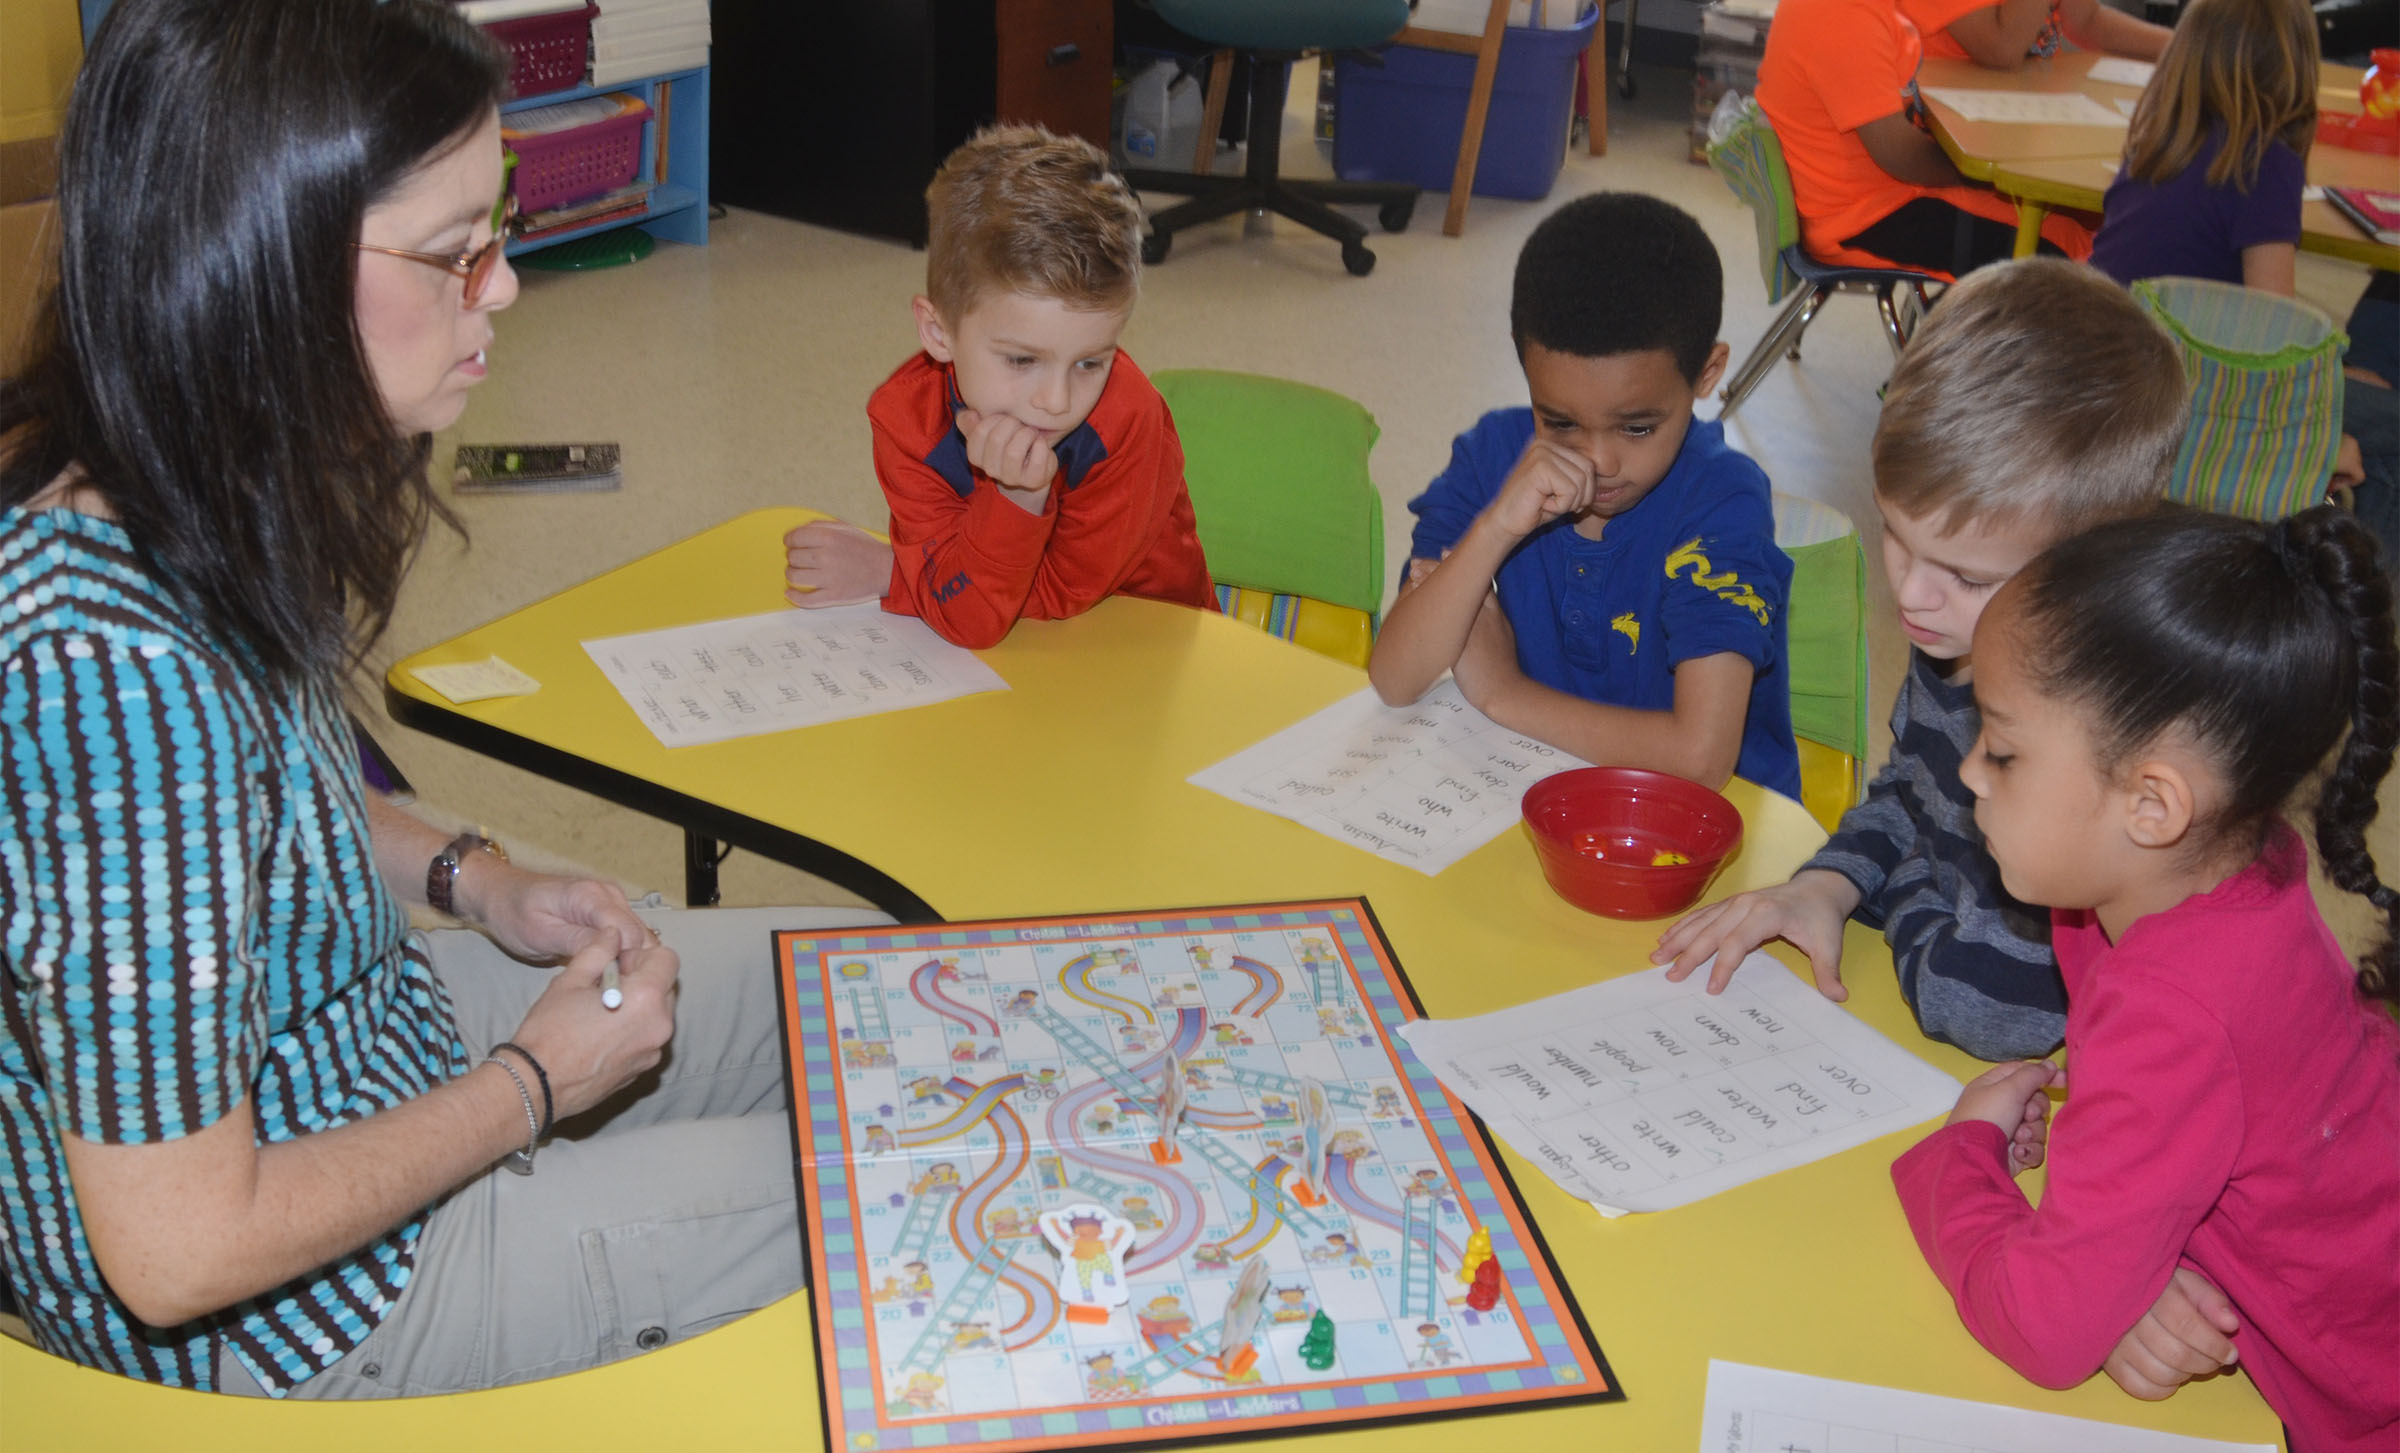 CES first-grade teacher Shirley Cox plays Candyland with students, from left, Parker Hamilton, Austin Hamilton, Logan Weddle and Essence Hunter to help them learn sight words.